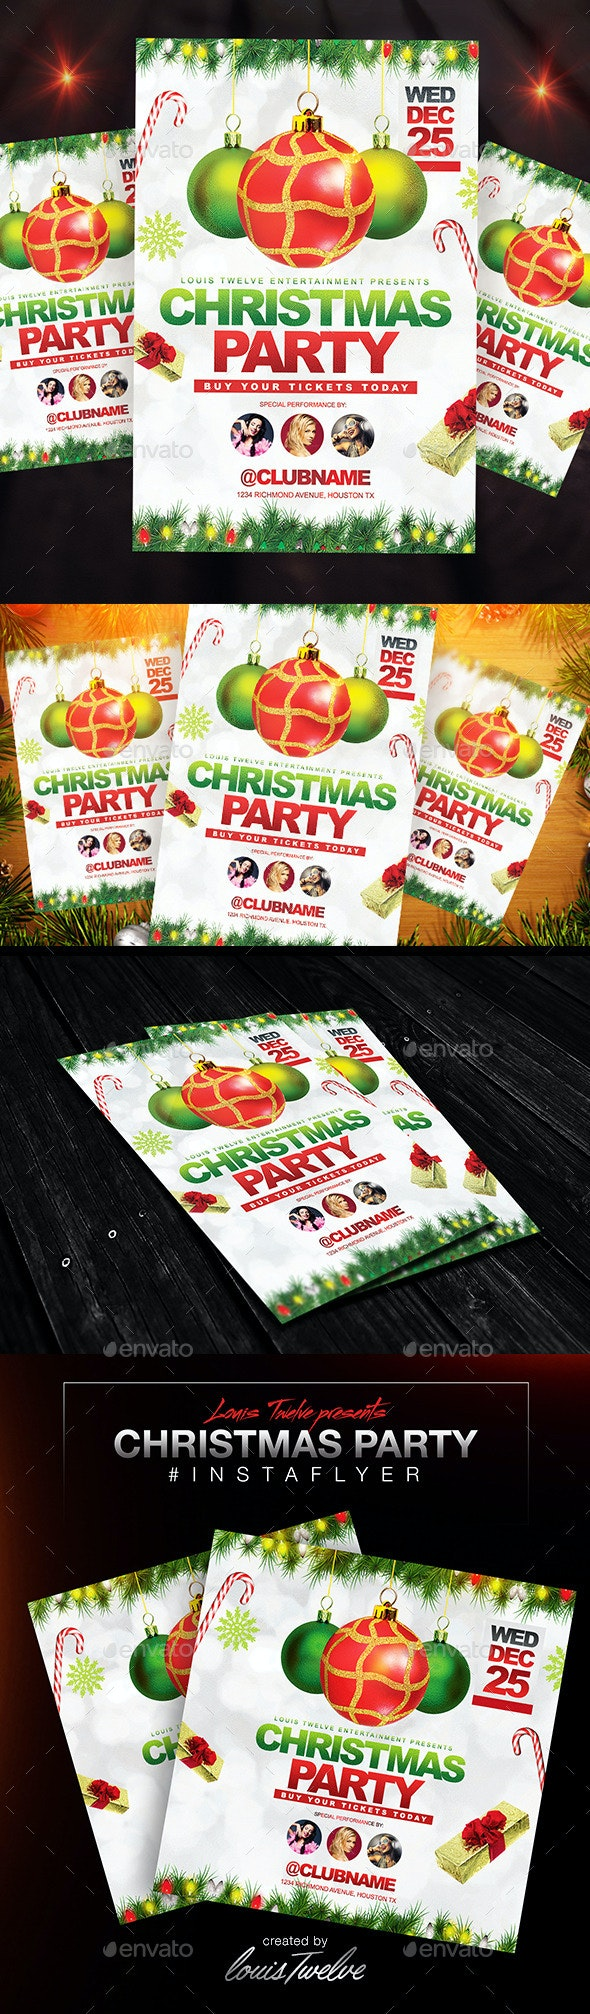 Christmas Party Flyer + Instapromo - Holidays Events